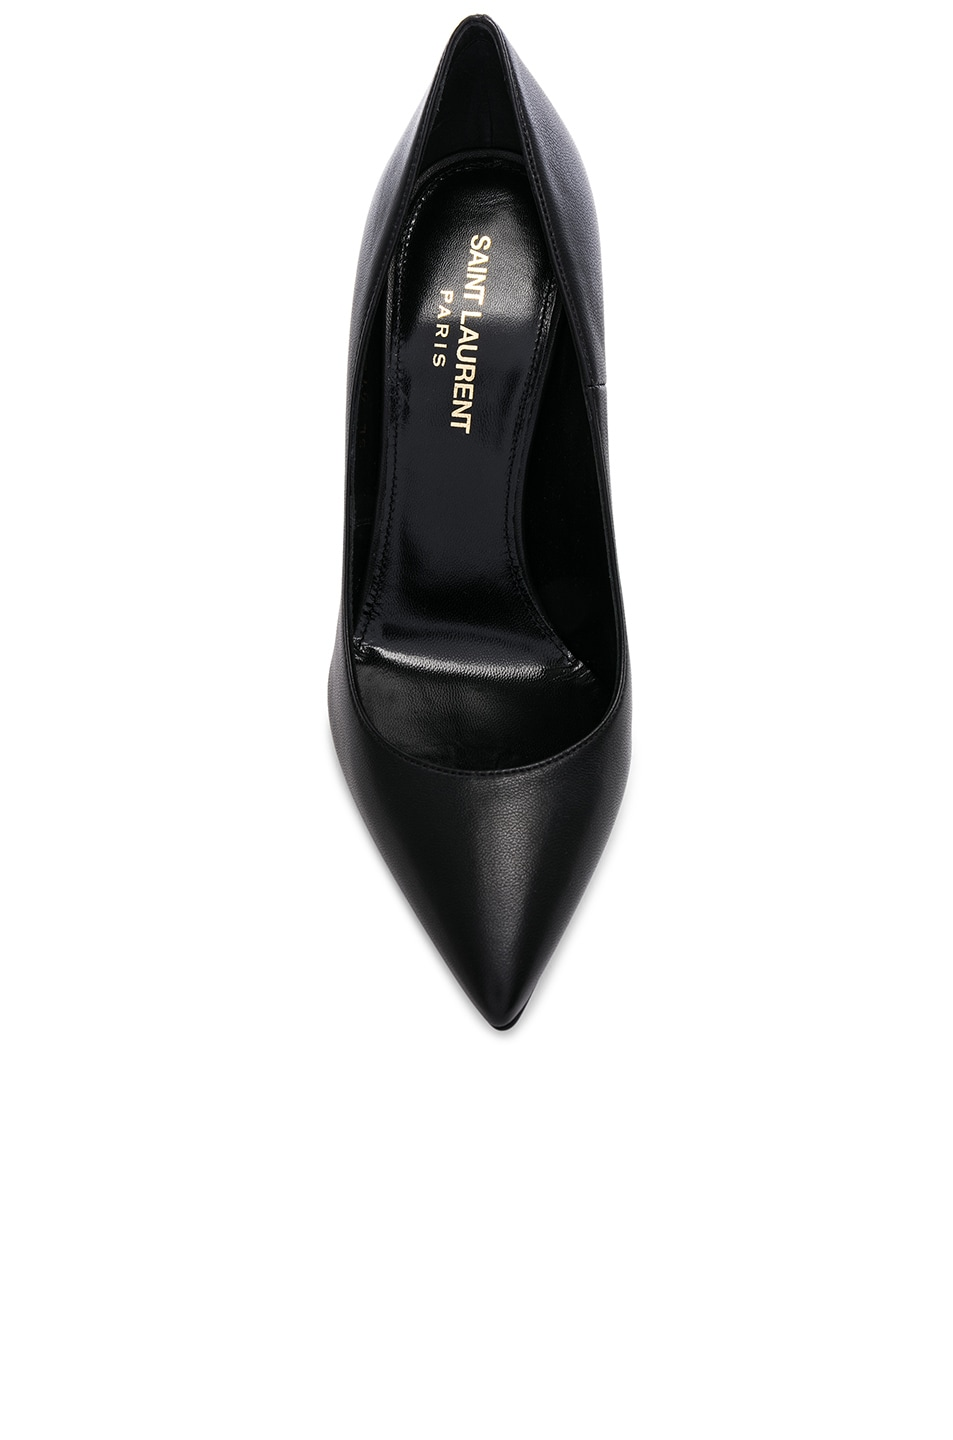 Image 4 of Saint Laurent Opium Leather Monogramme Heels in Black & Black